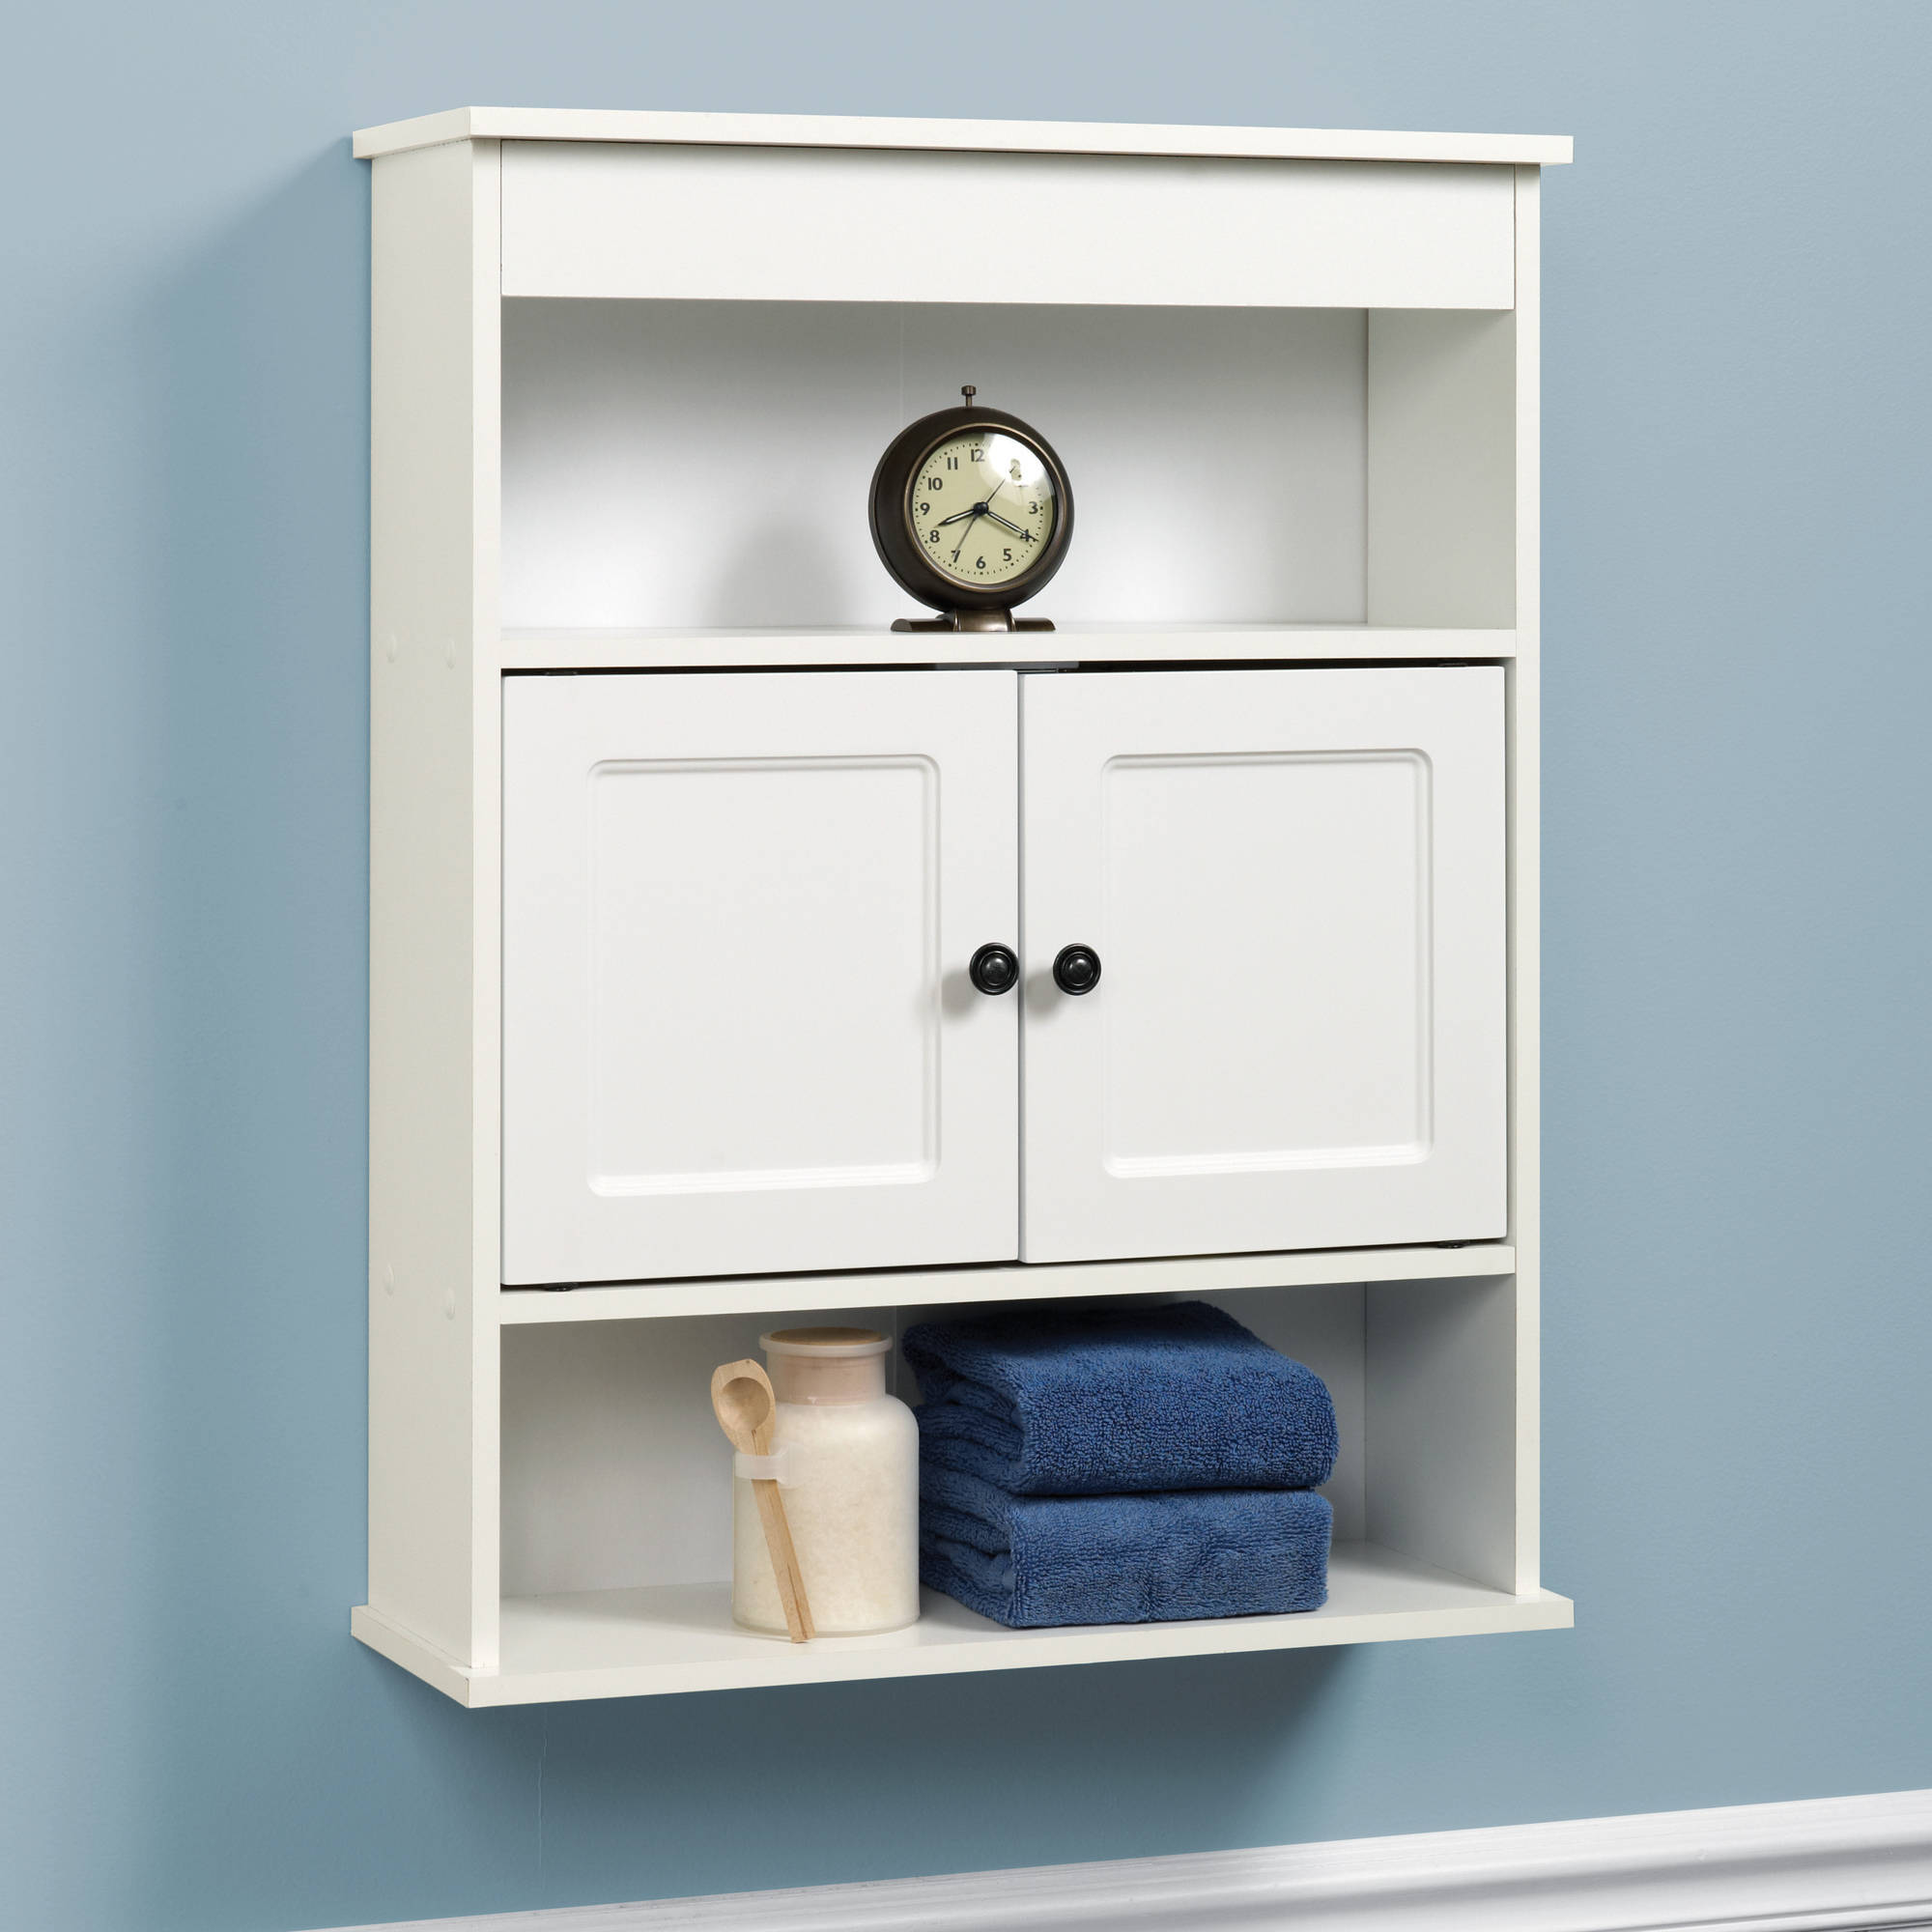 Cabinet wall bathroom storage white shelf organizer over Bathroom storage cabinets